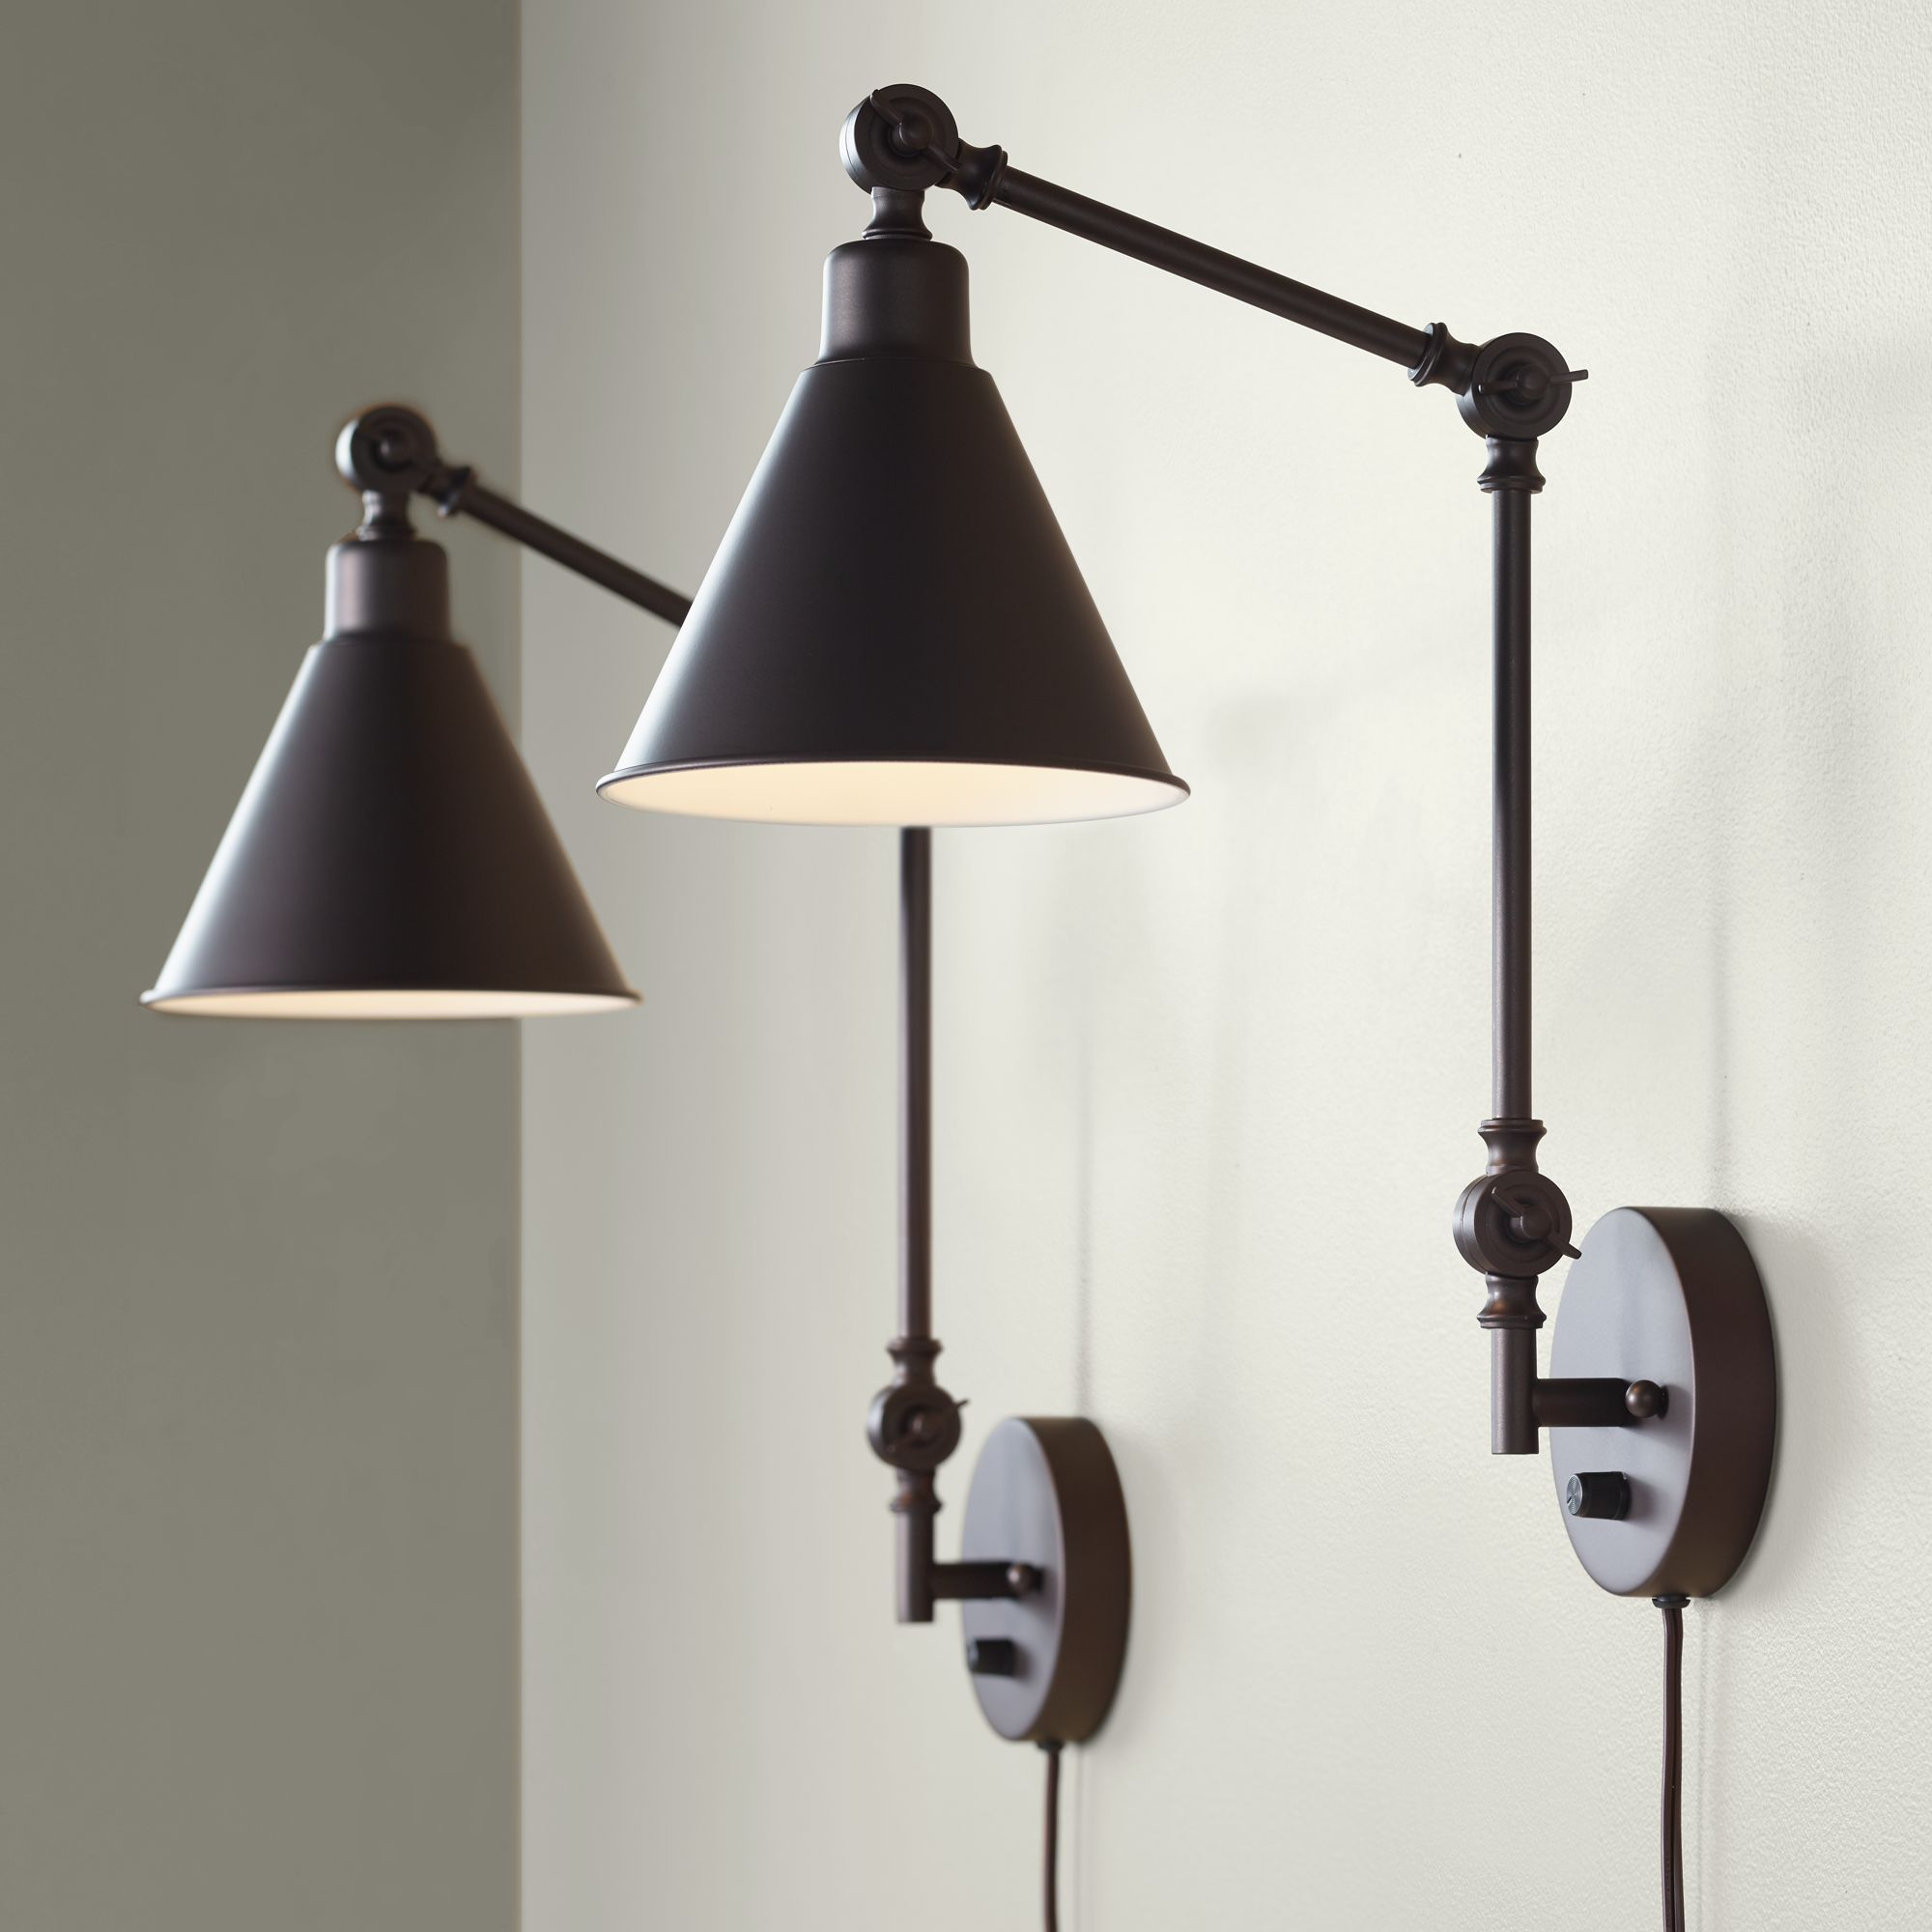 Home Plug In Wall Lamp Wall Mounted Lamps Swing Arm Wall Lamps